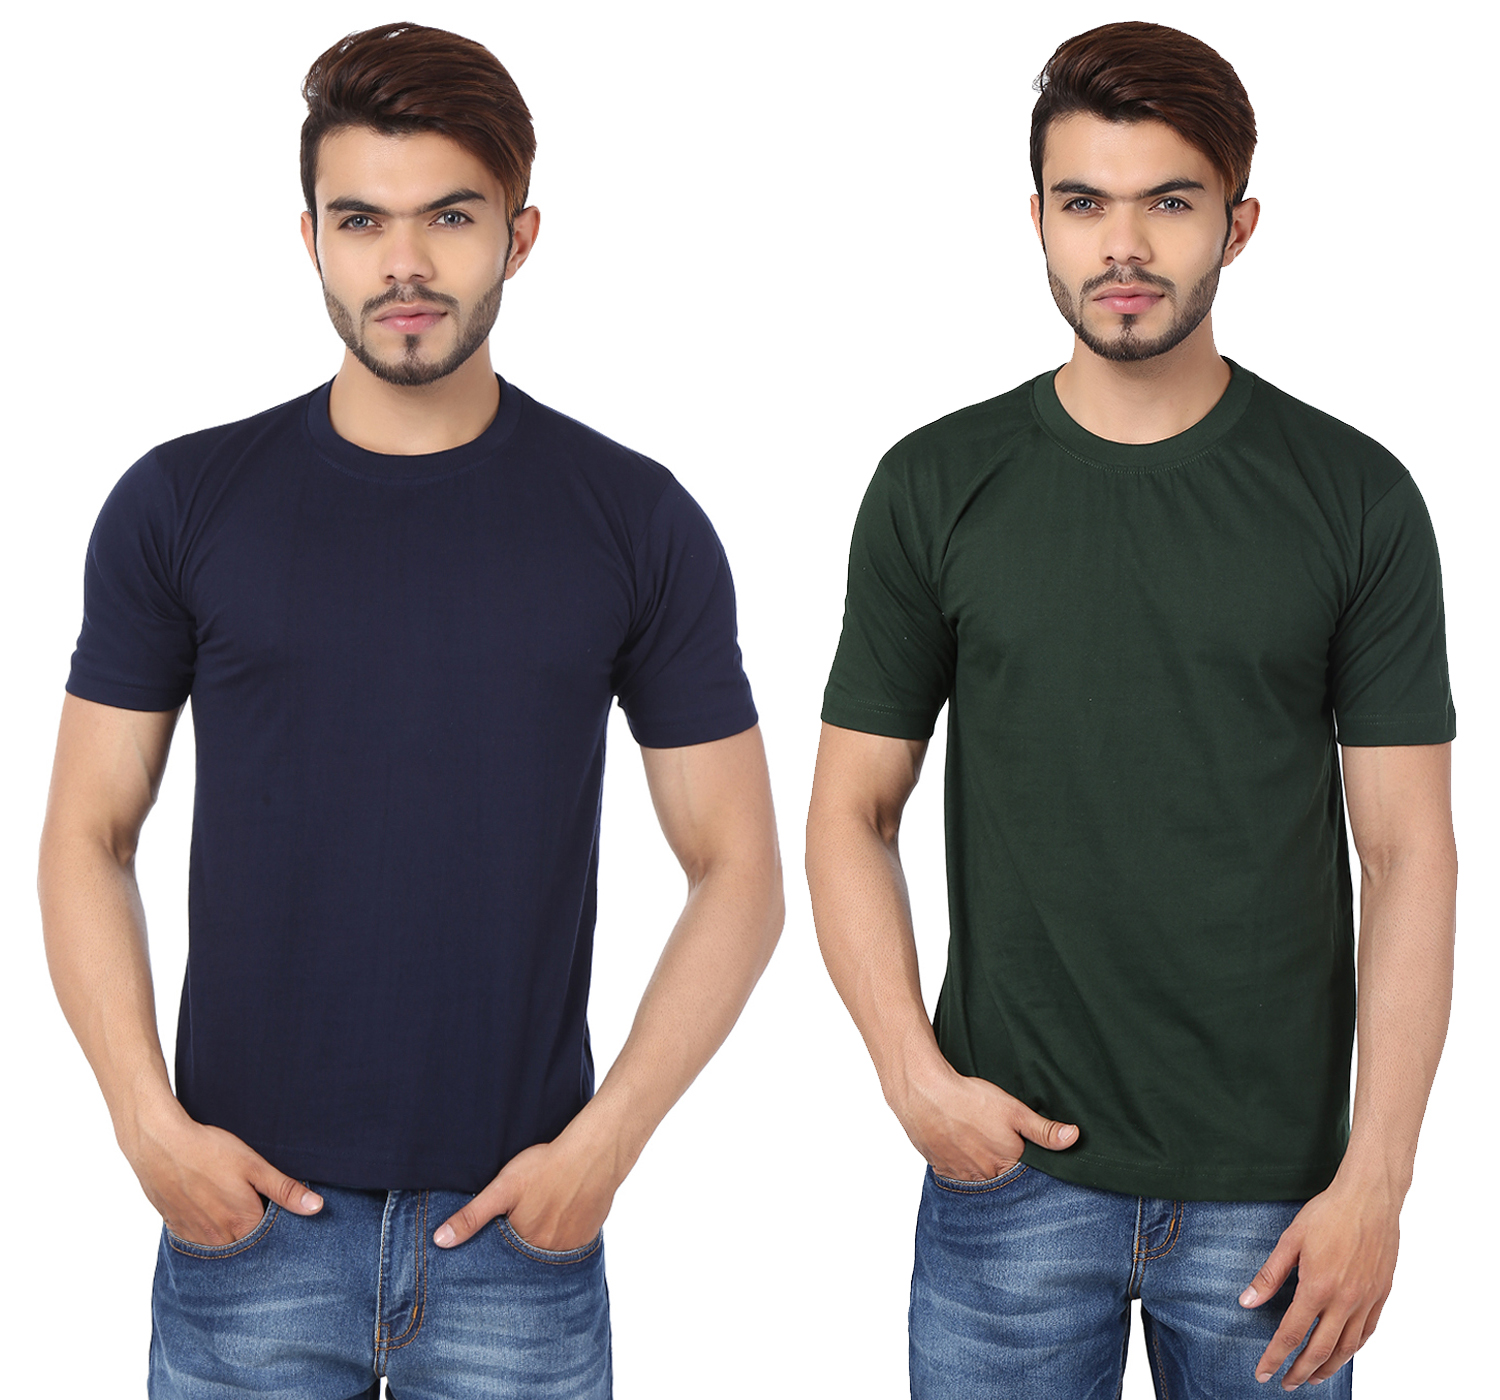 Weardo Combo Of Men's 2 Round Neck T-Shirts In Navy Blue & Bottle Green Color